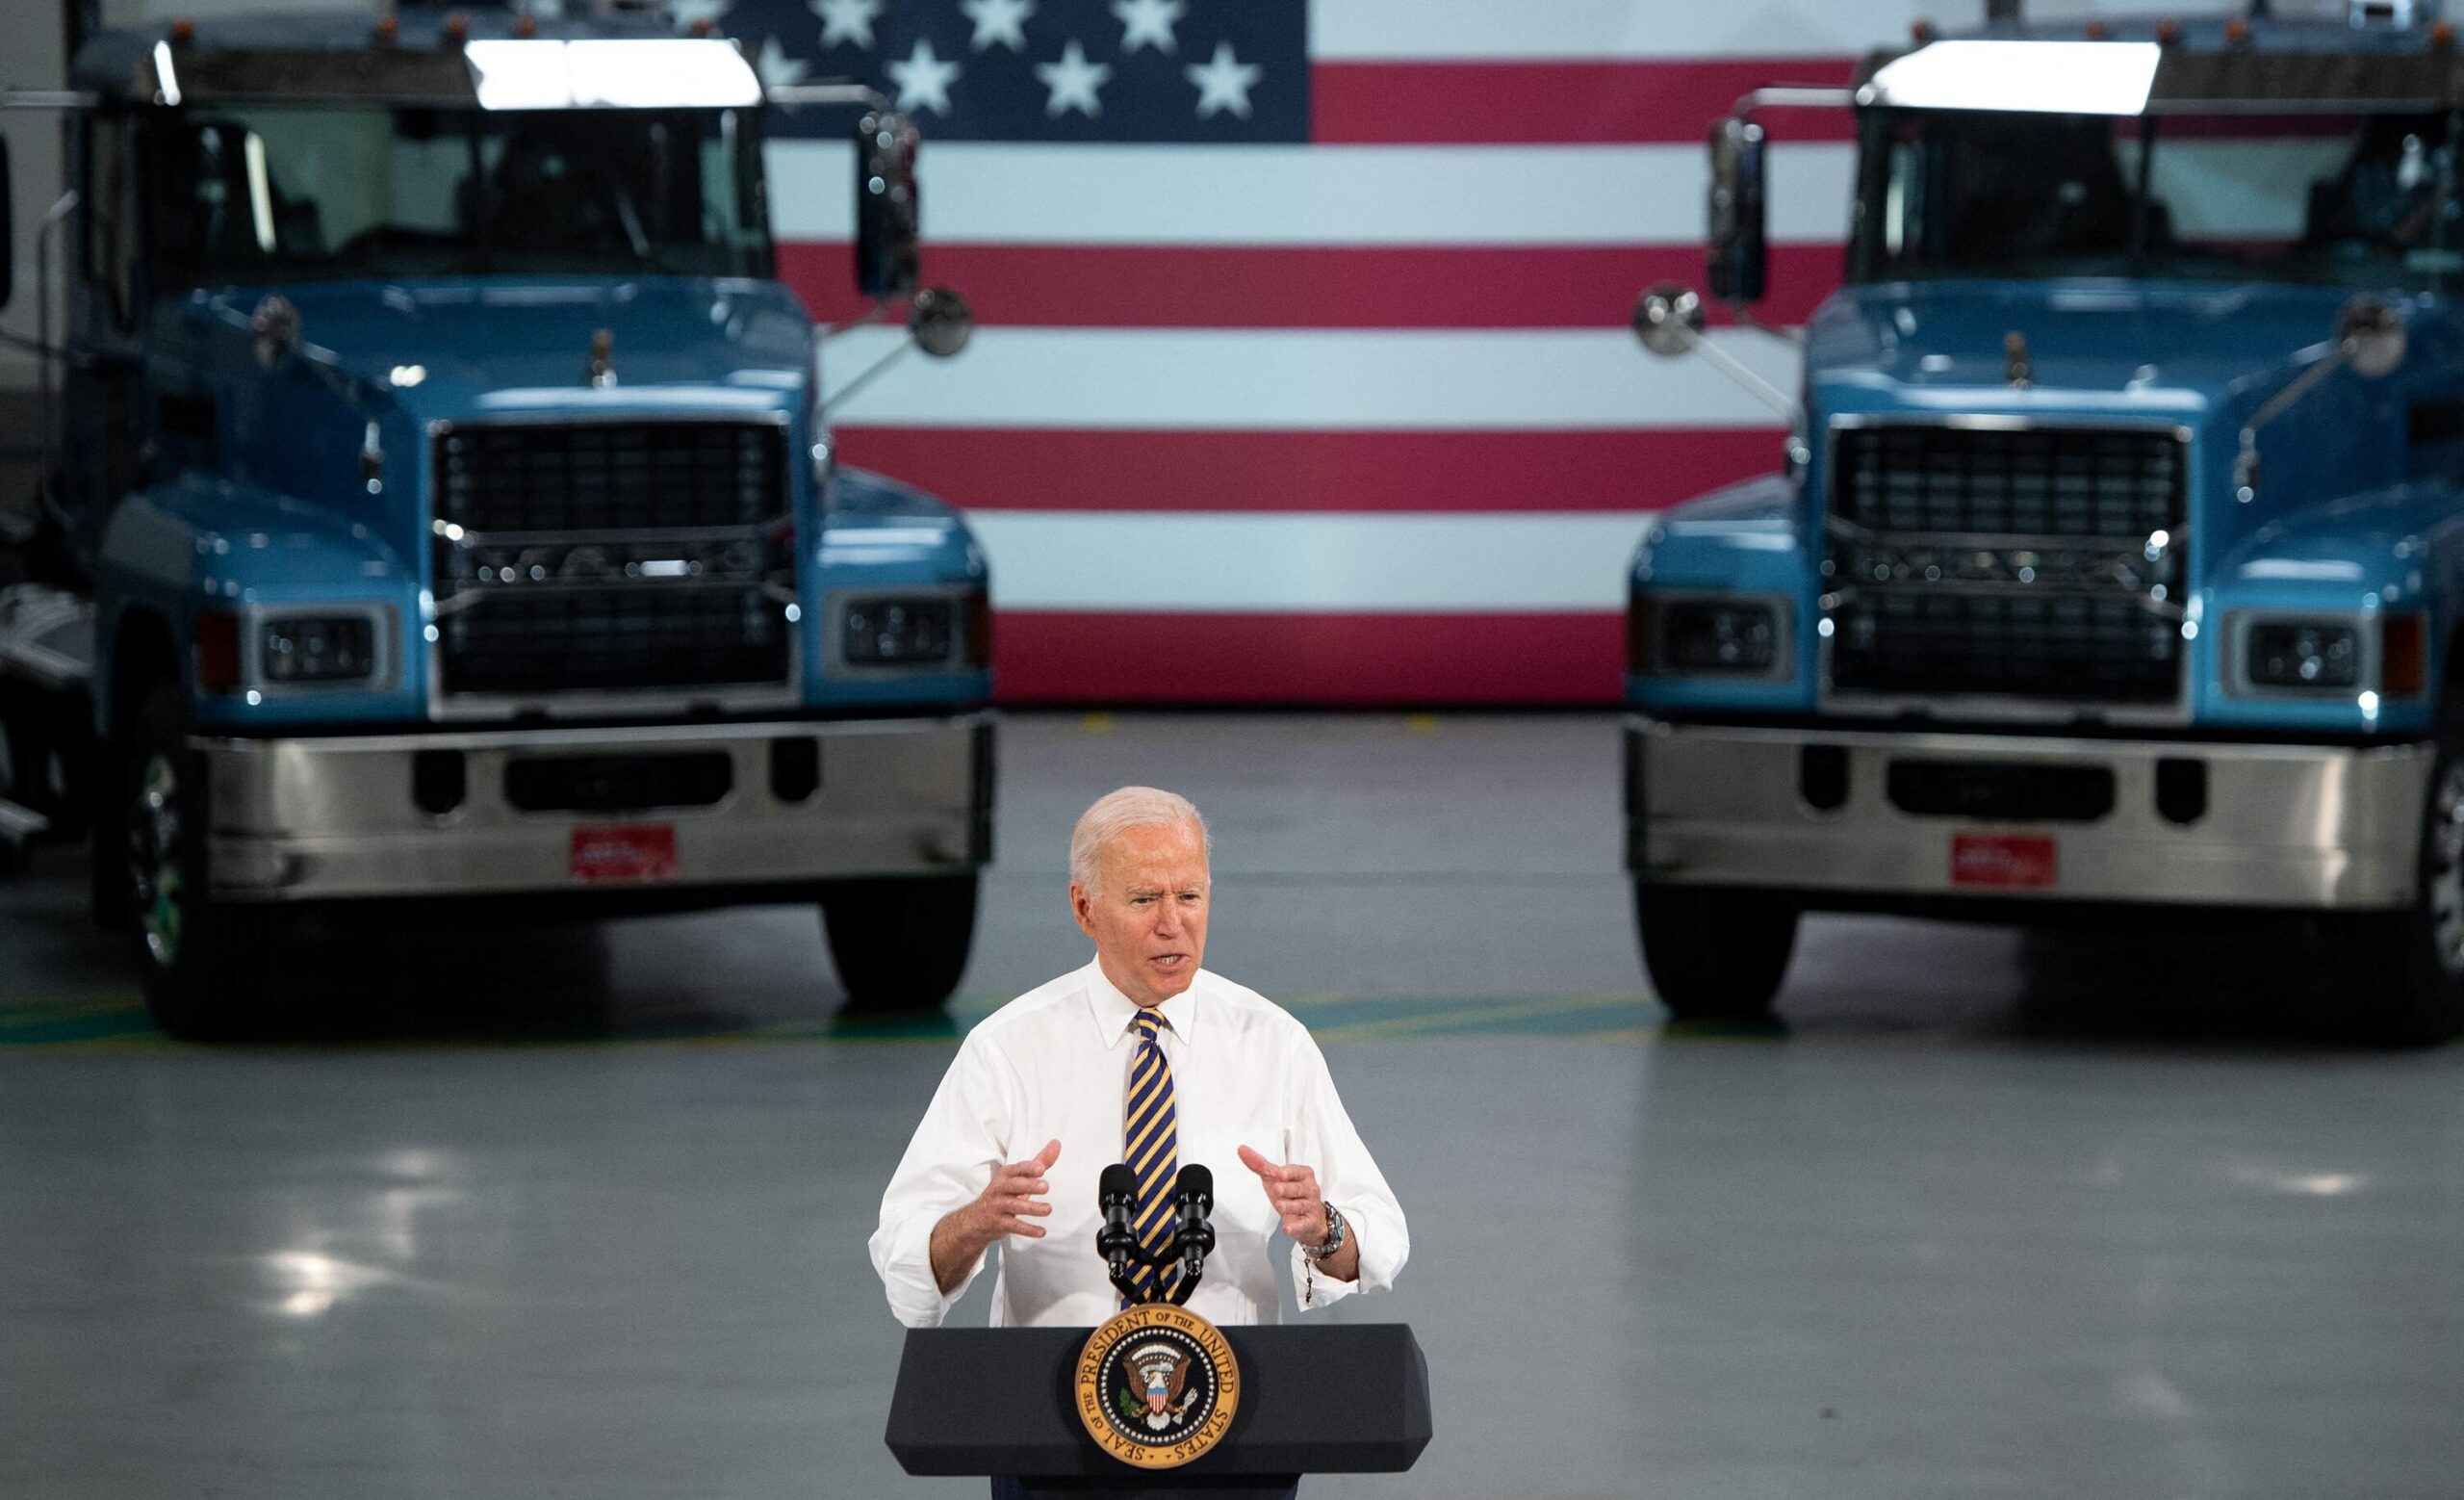 <i>SAUL LOEB/AFP/Getty Images</i><br/>US President Joe Biden speaks about American manufacturing and the American workforce after touring the Mack Trucks Lehigh Valley Operations Manufacturing Facility in Macungie